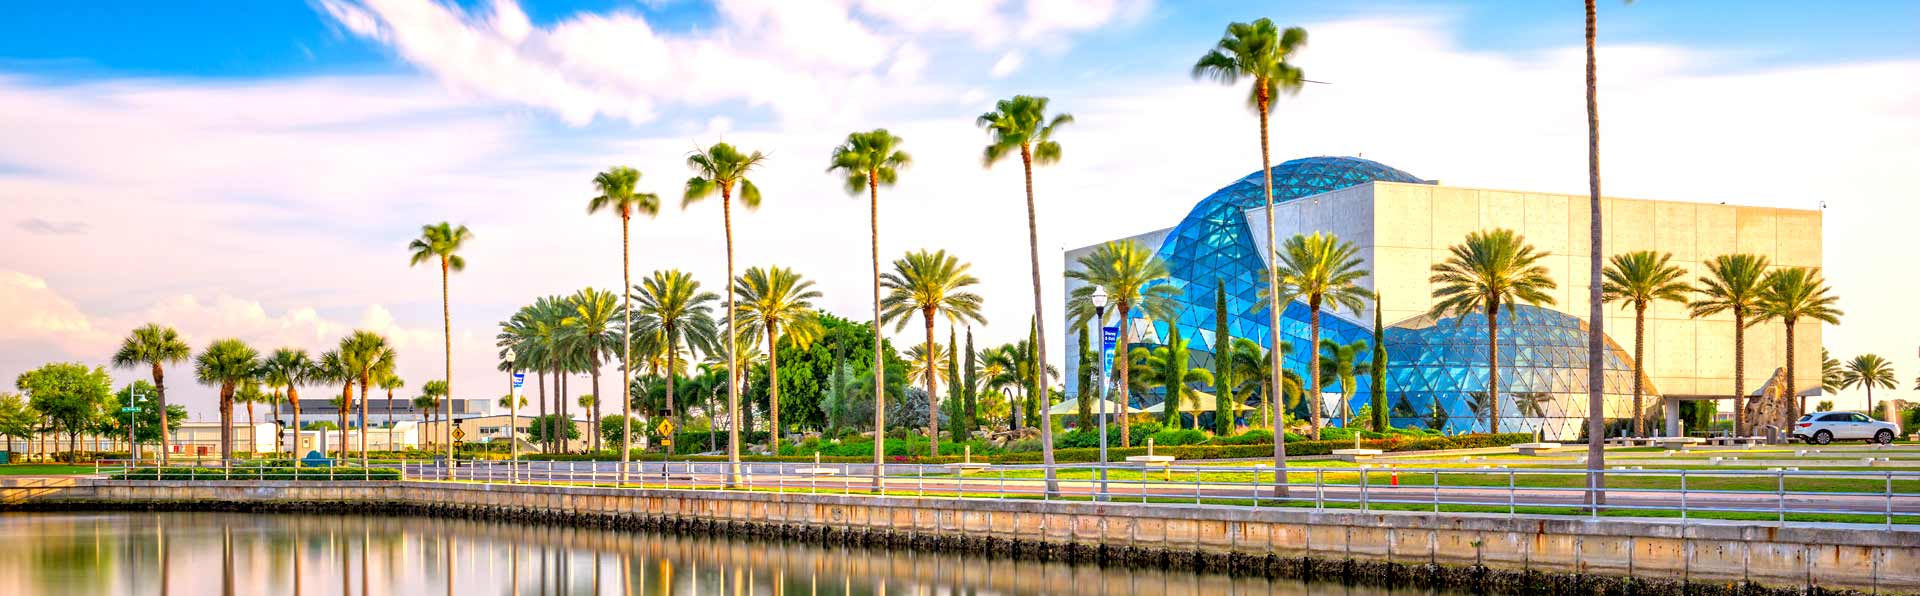 The Dali Musem in St Peterburg, Florida